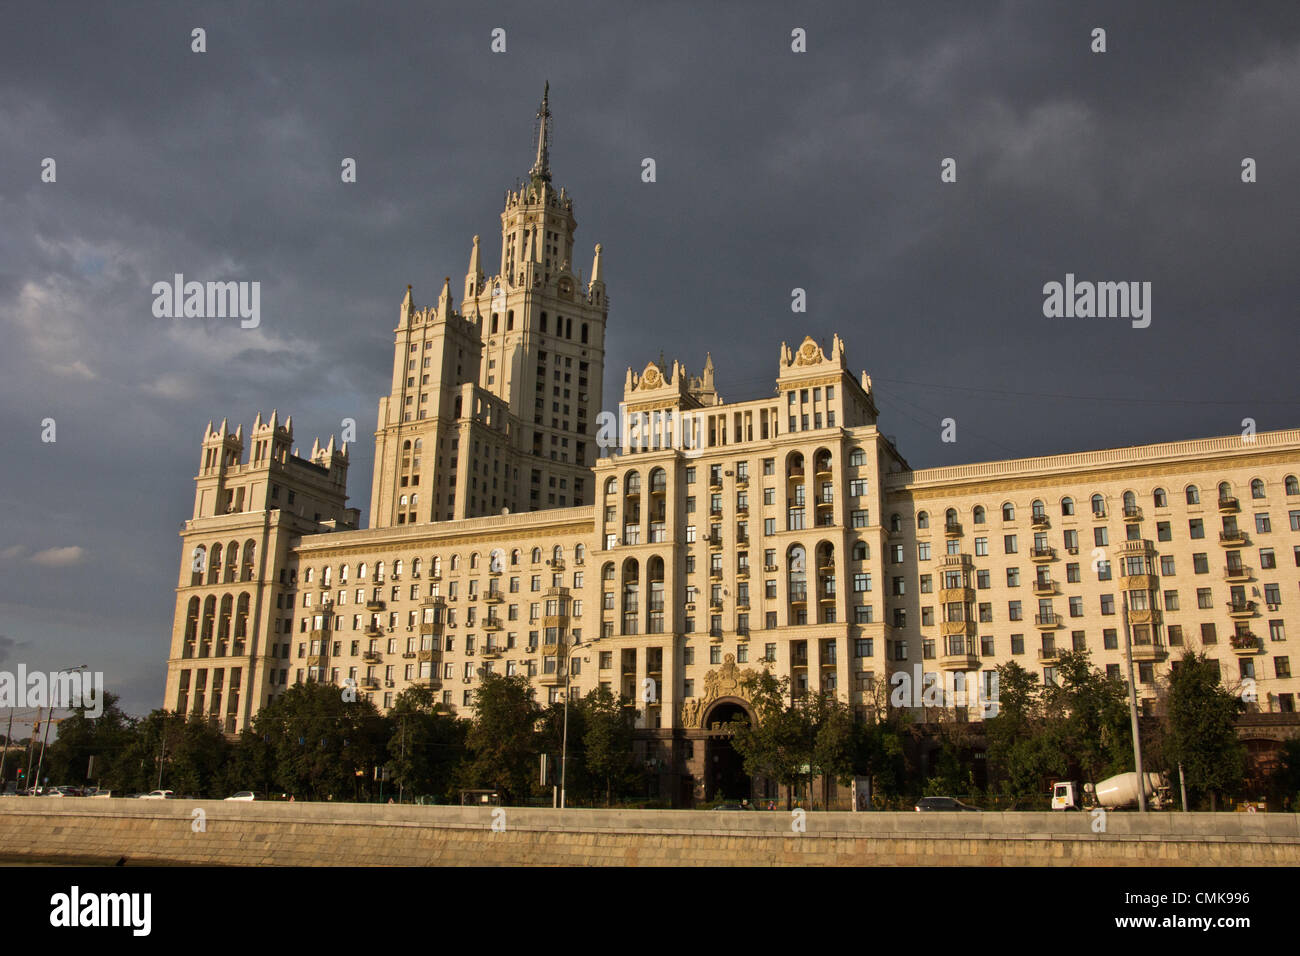 Aug. 12, 2012 - Moscow, Russia - Stalinist architecture (Stalin's Empire style or Stalin's Neo-renaissance), also Stock Photo